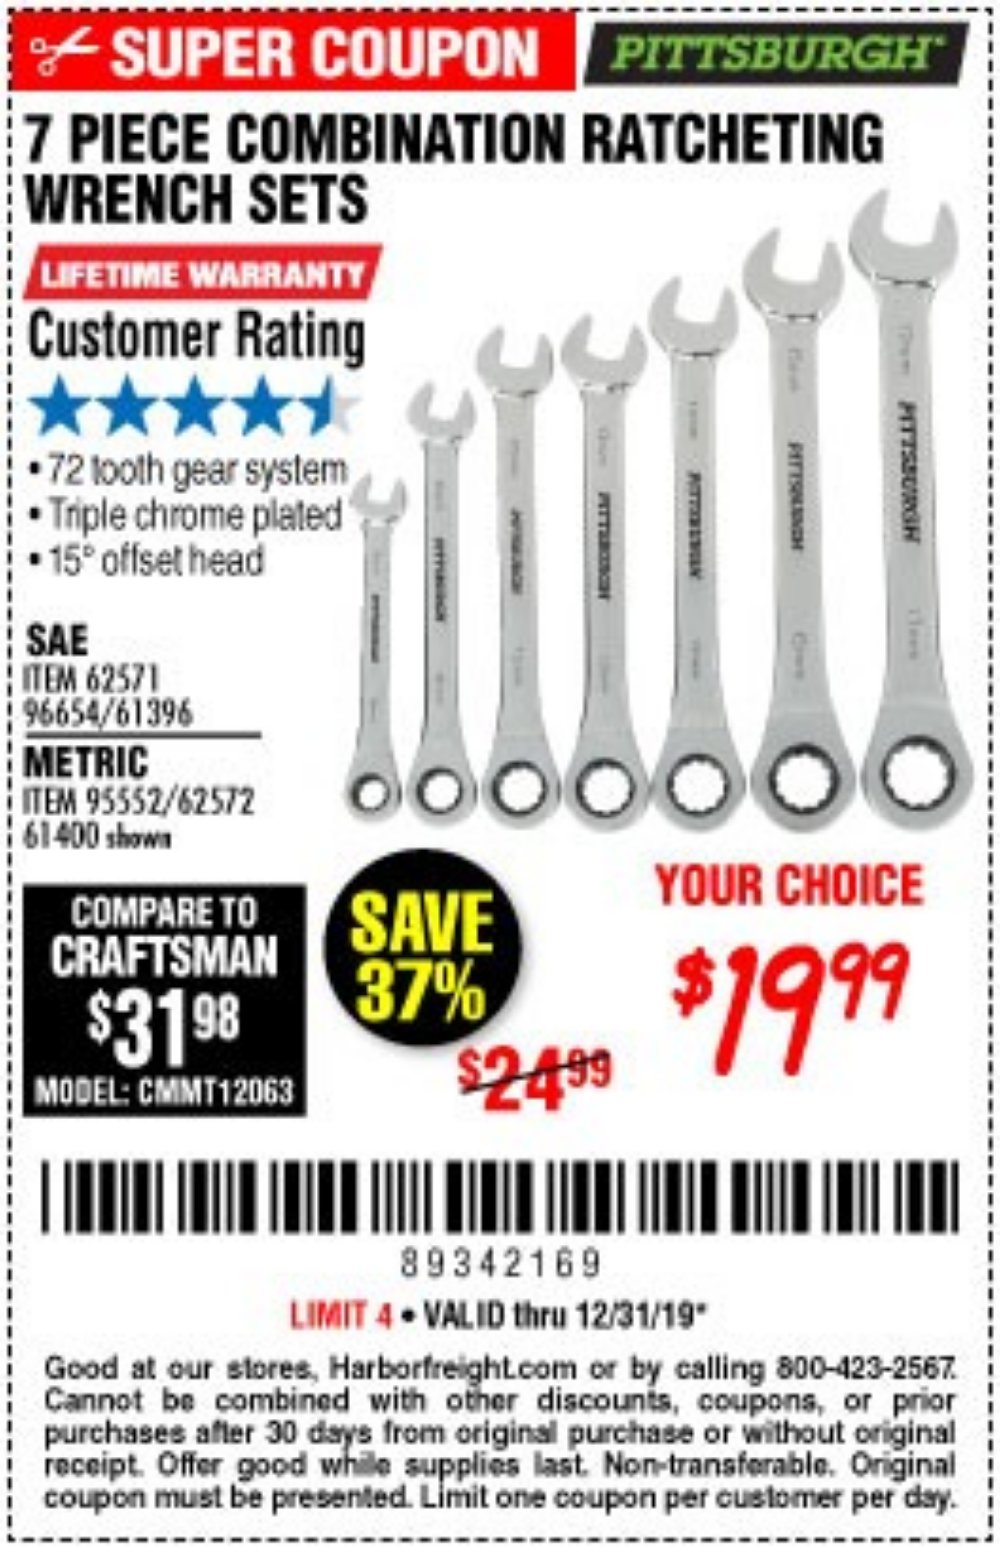 Harbor Freight Coupon, HF Coupons - 7 Piece Combination Ratcheting Wrench Set